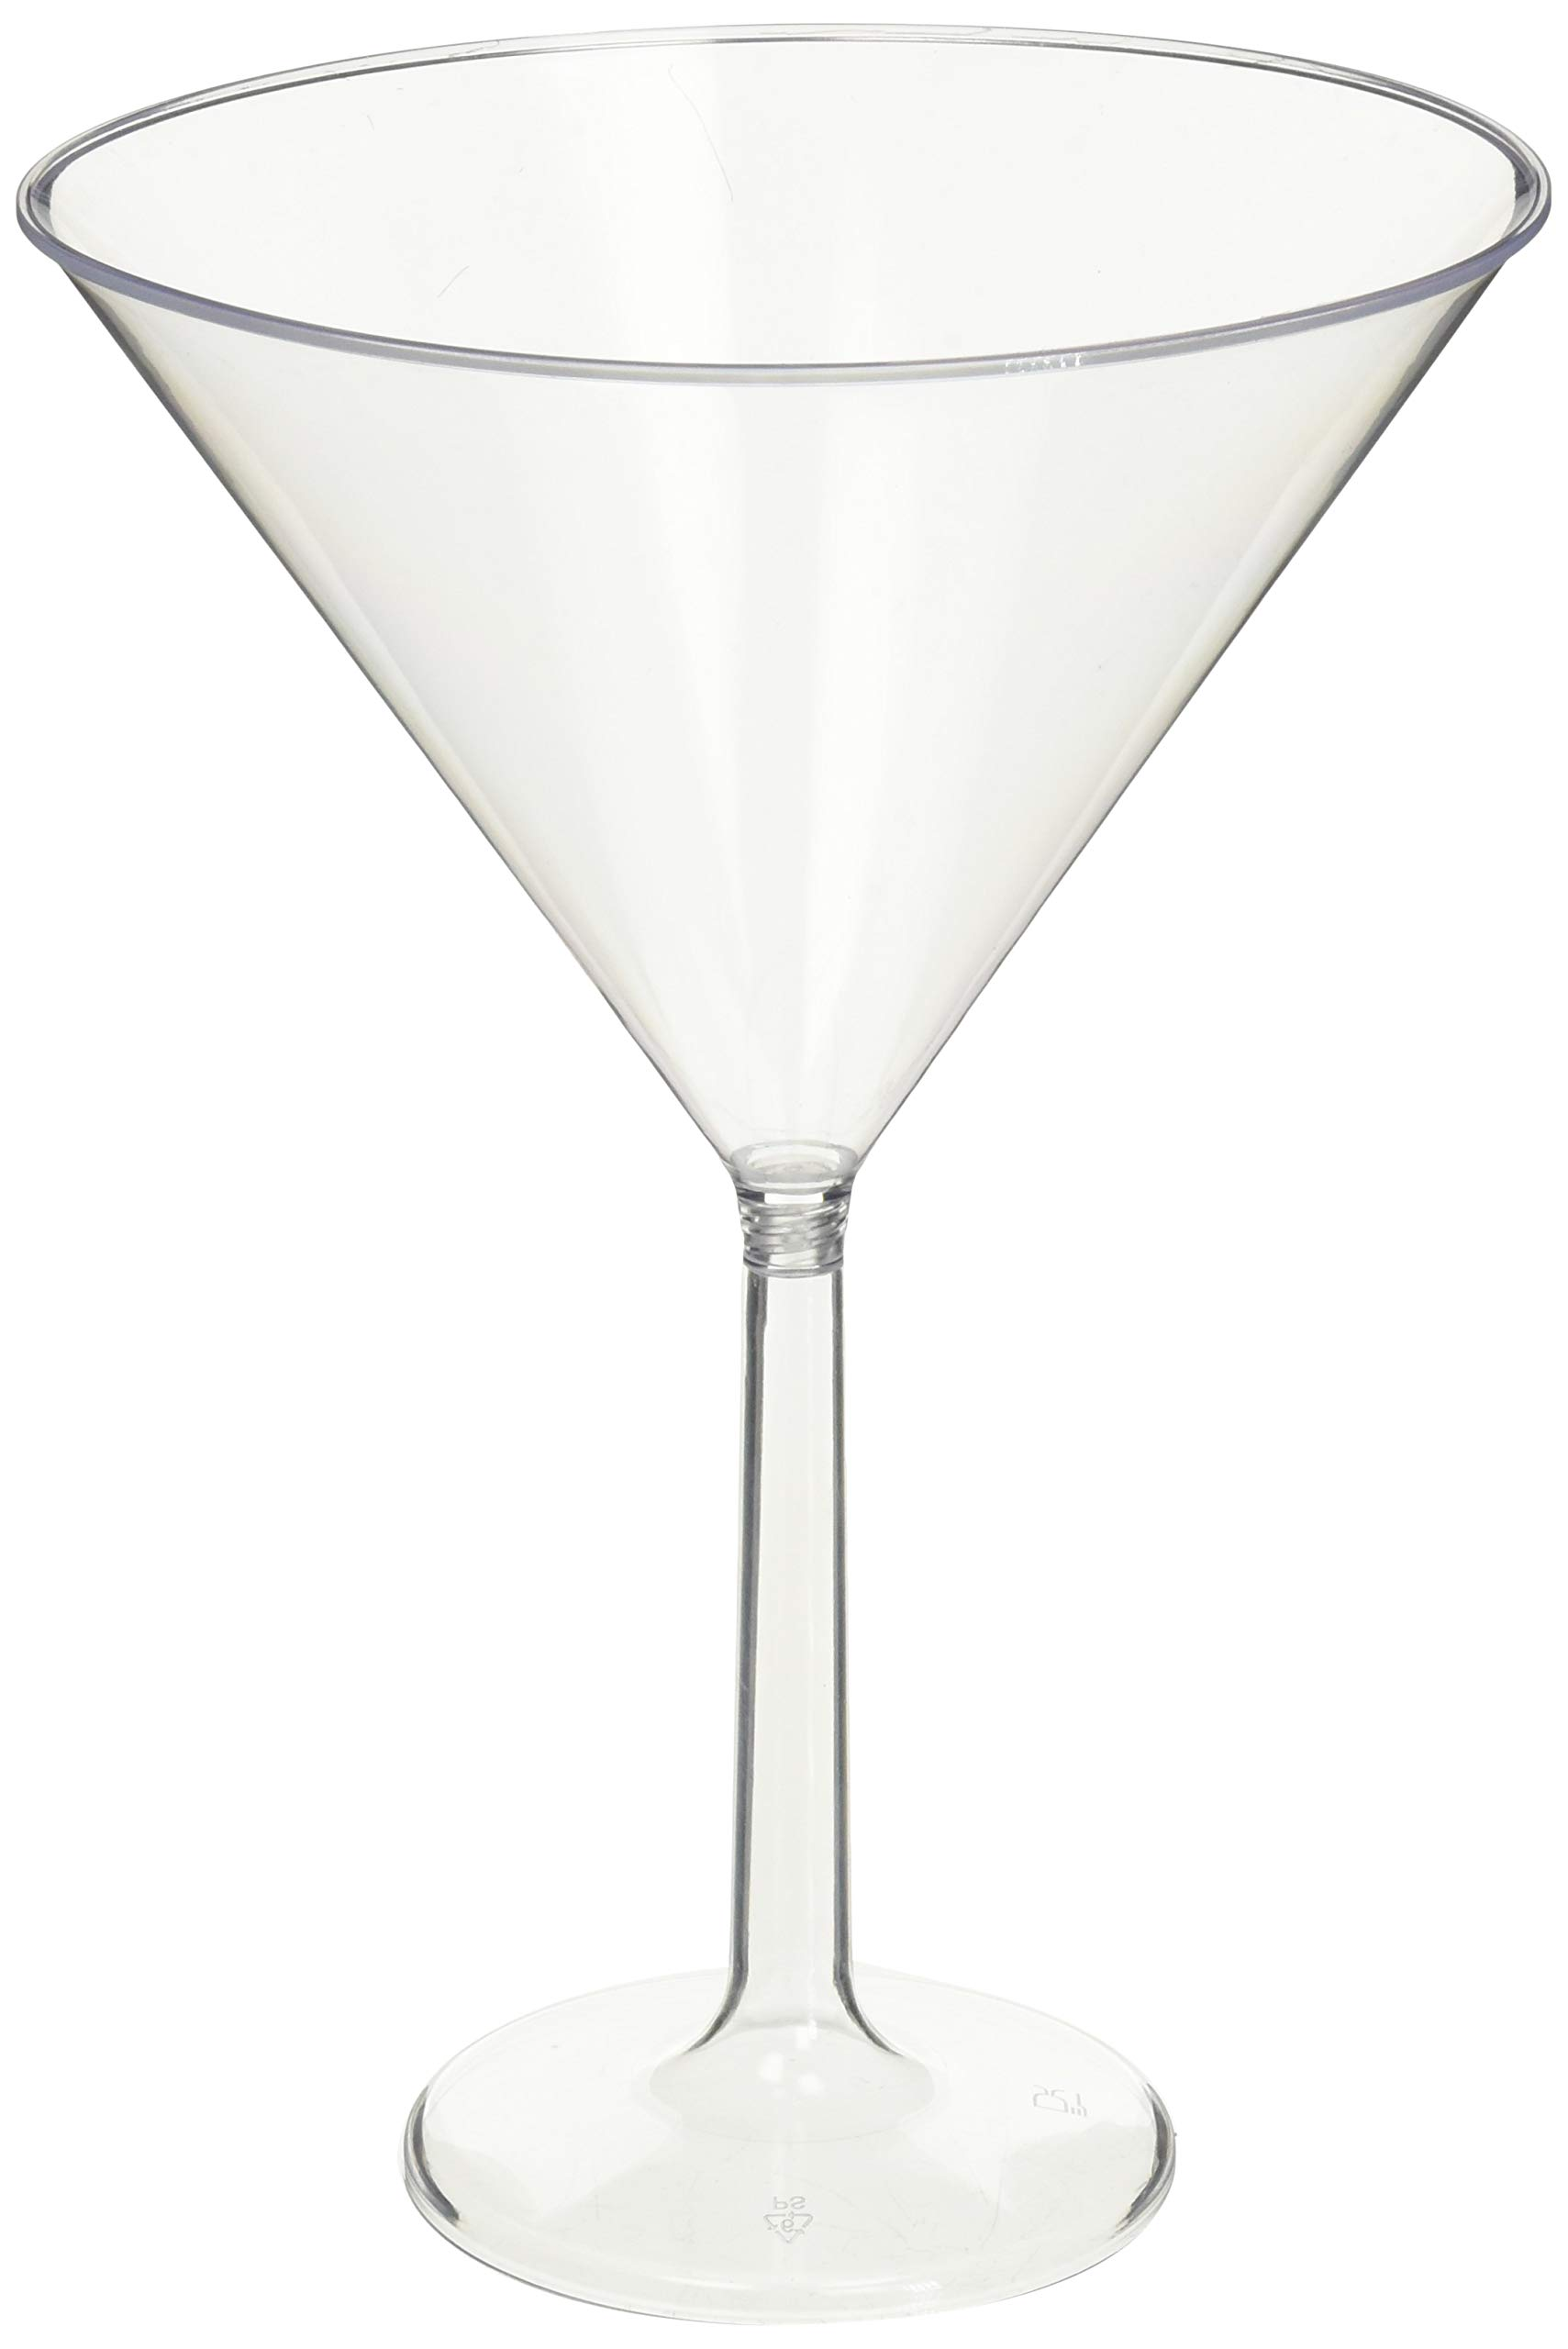 goodieGumDrops 353001.86 Plastic Martini Glasses 25oz Clear(pack of 6)